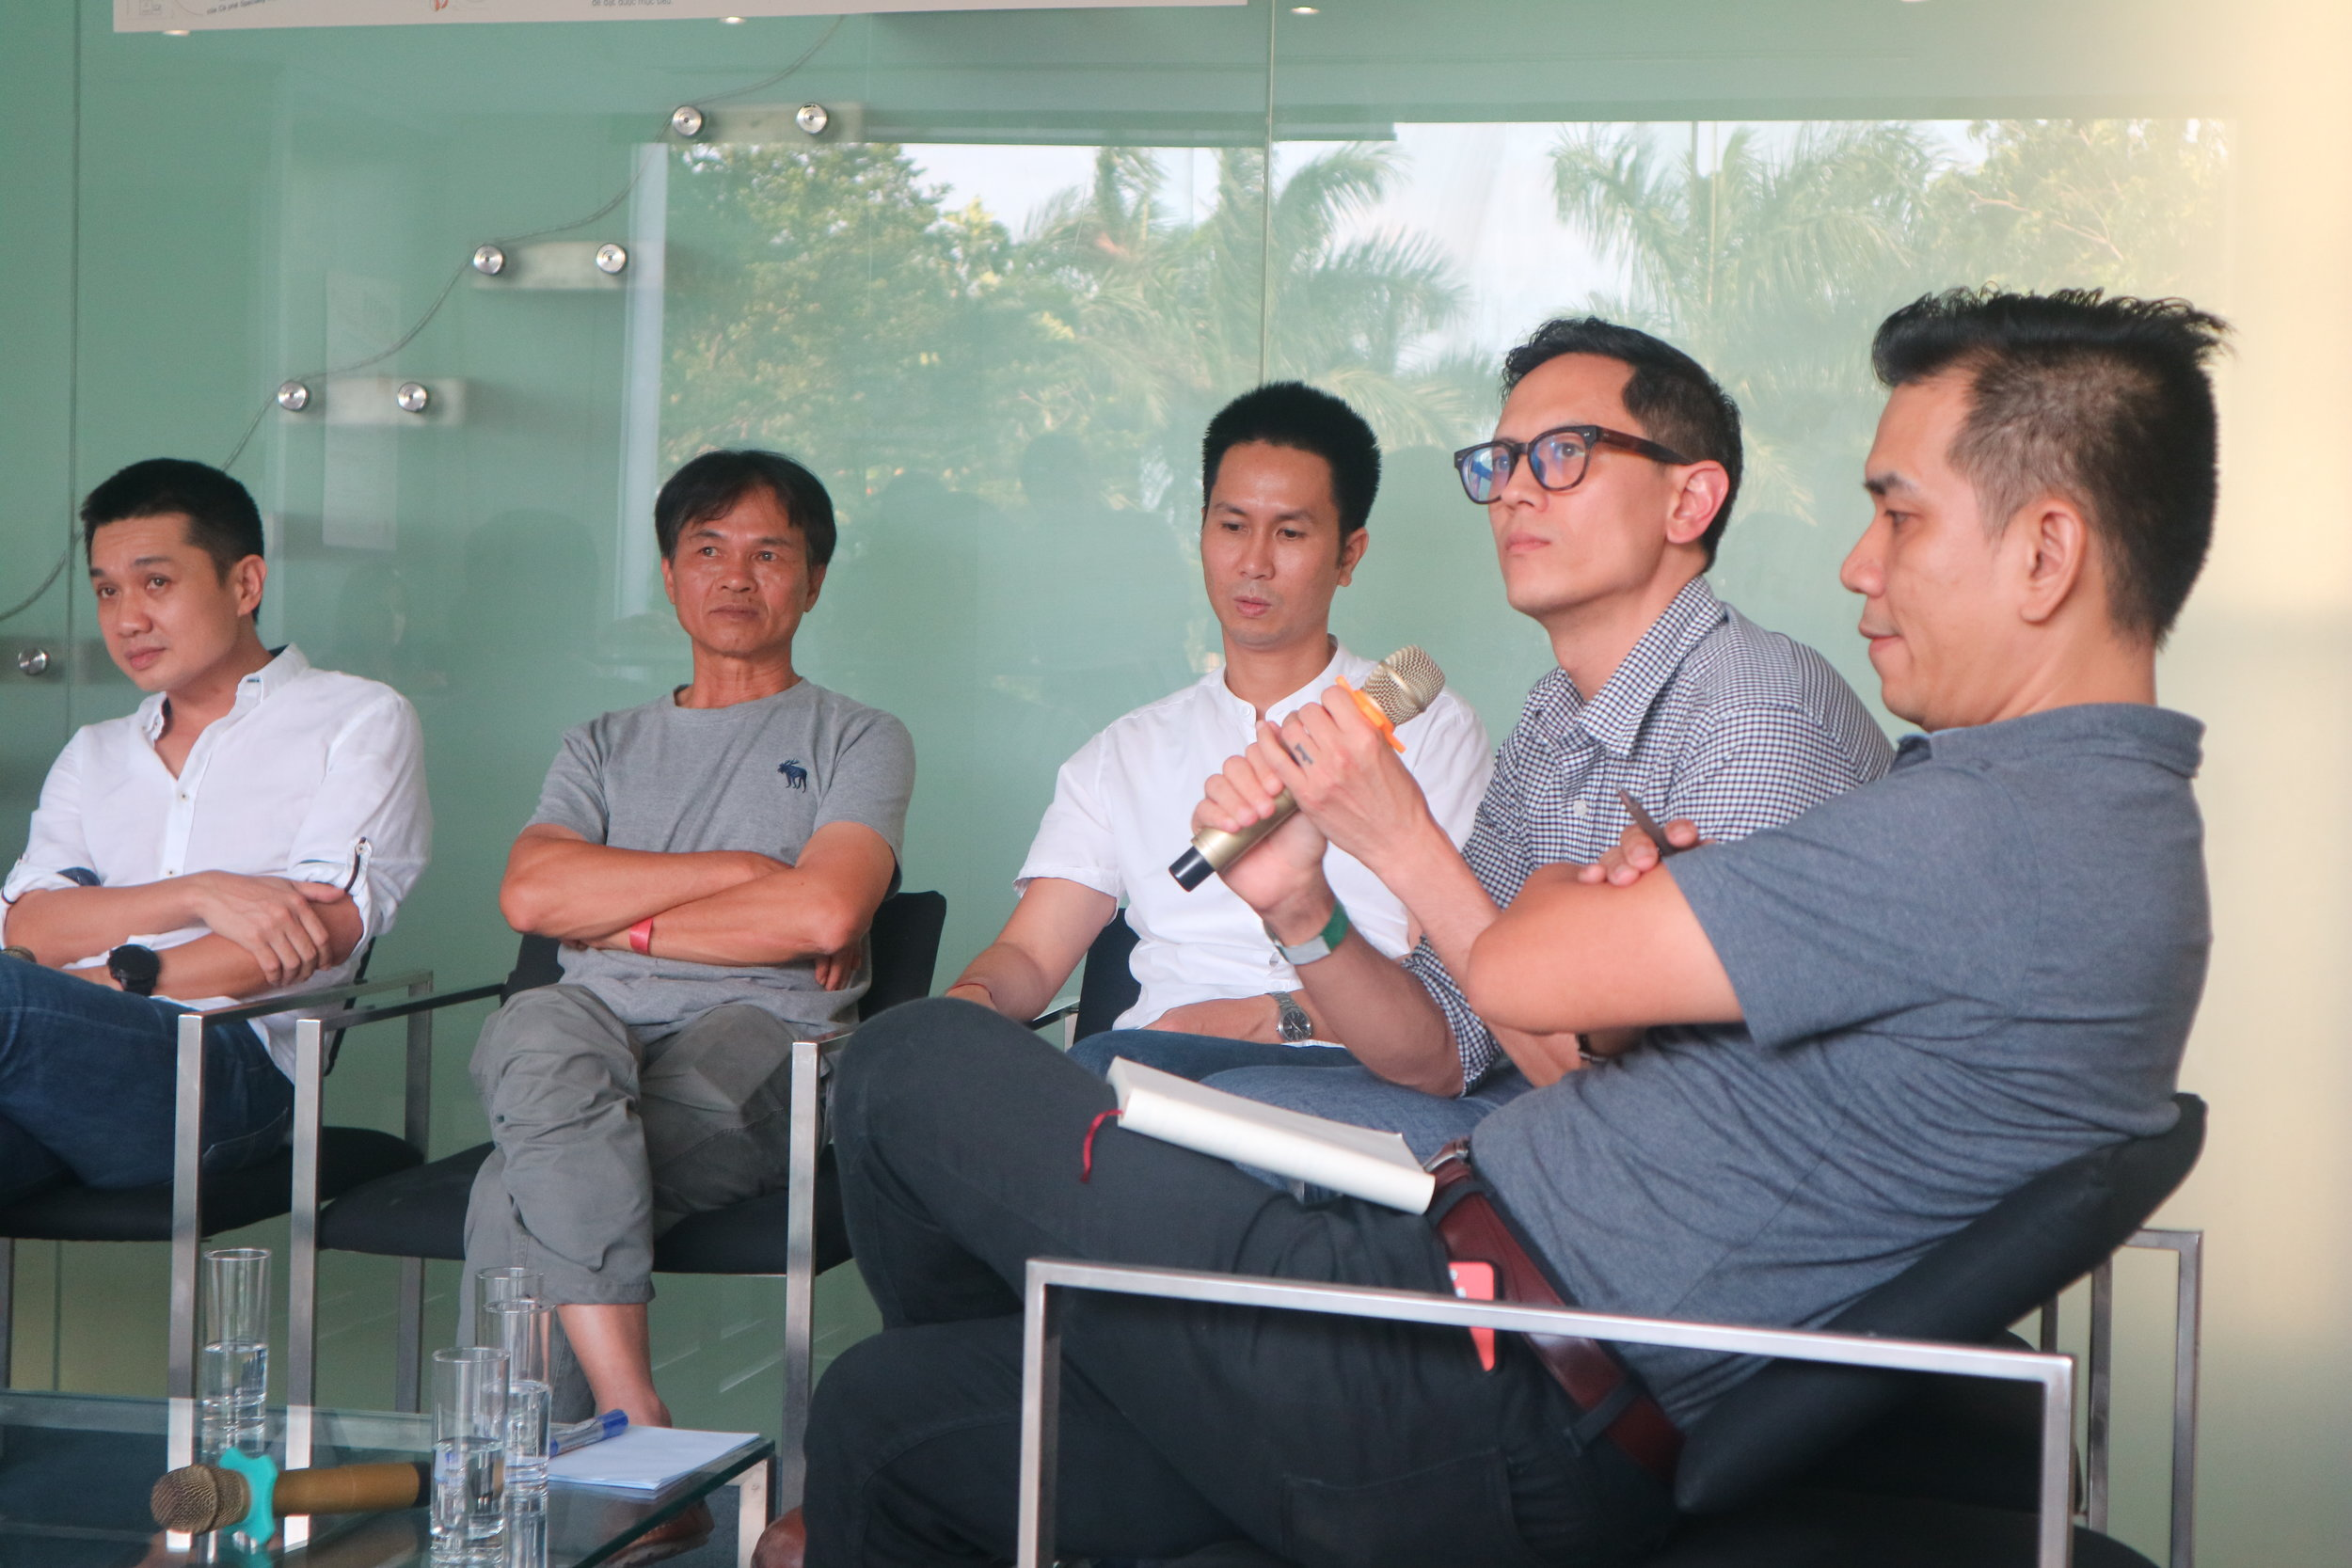 "Dzung Nguyen (Founder of The Workshop, Saigon); Son ""Pacamara"" Nguyen (Producer, Cafe-Roastery owner, Dalat); Quang Tran (Founder of La Viet); yours truly; Hung Nguyen (Founder of Bosgaurus Coffee, Saigon)"